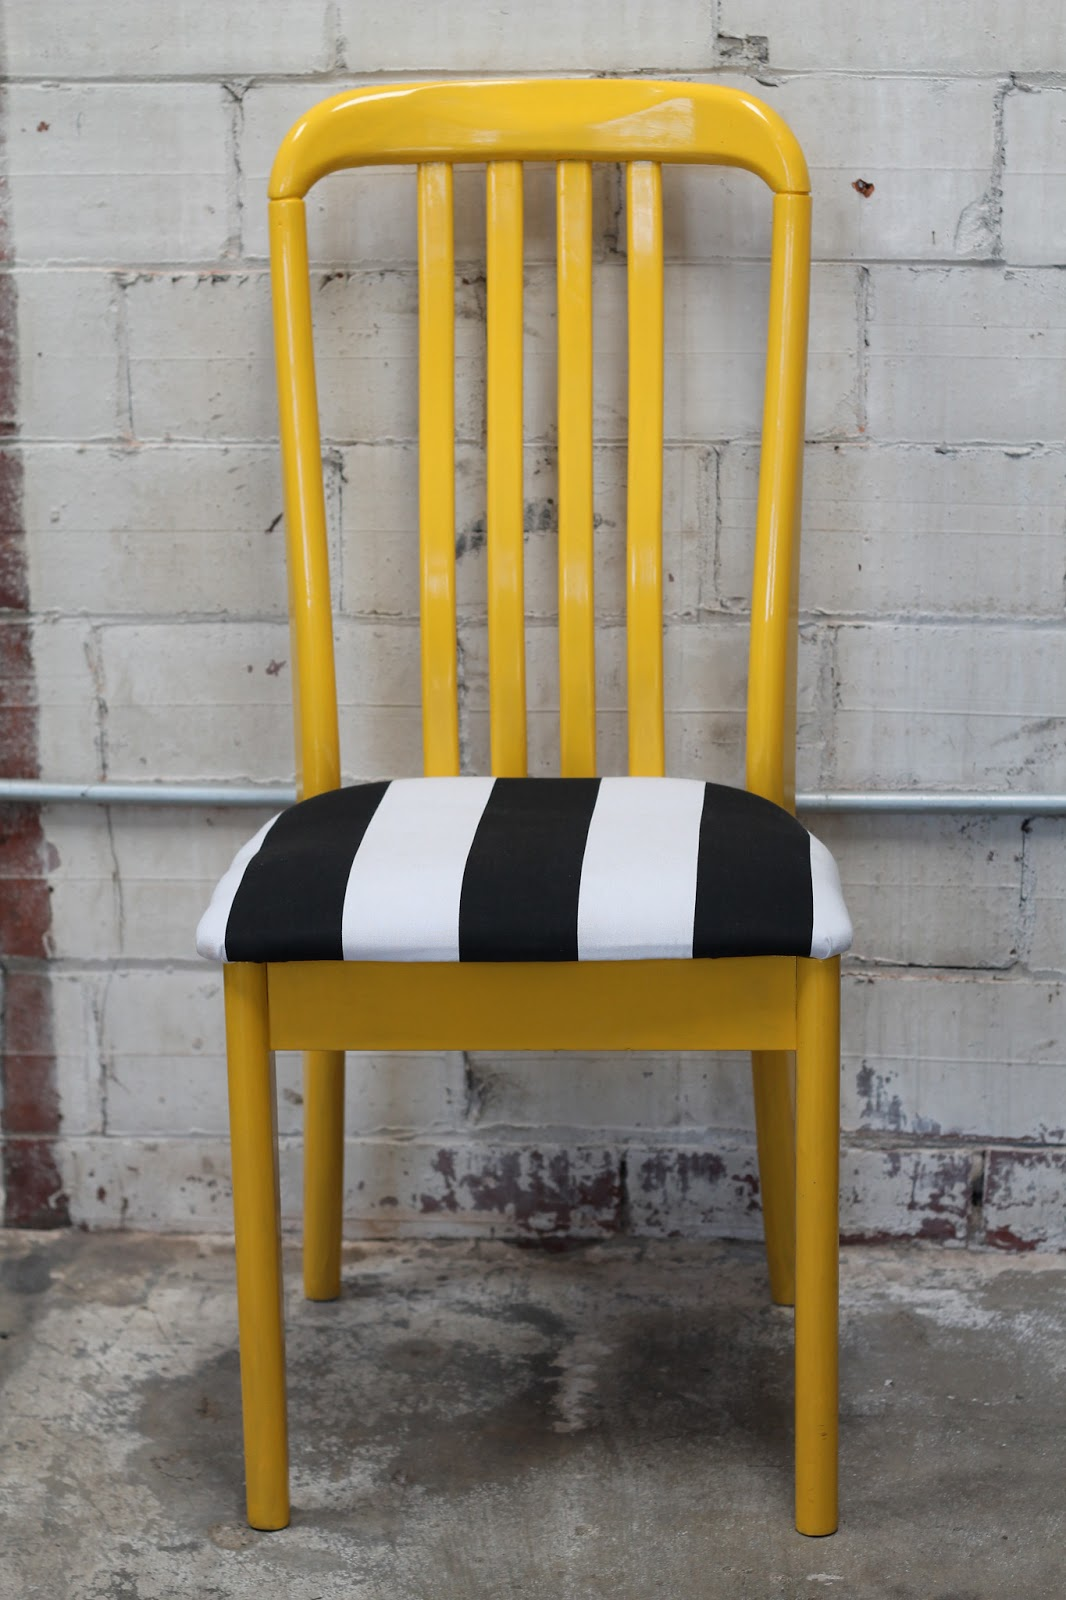 Walrus: Yellow Painted Chair with Black and White Striped Seat